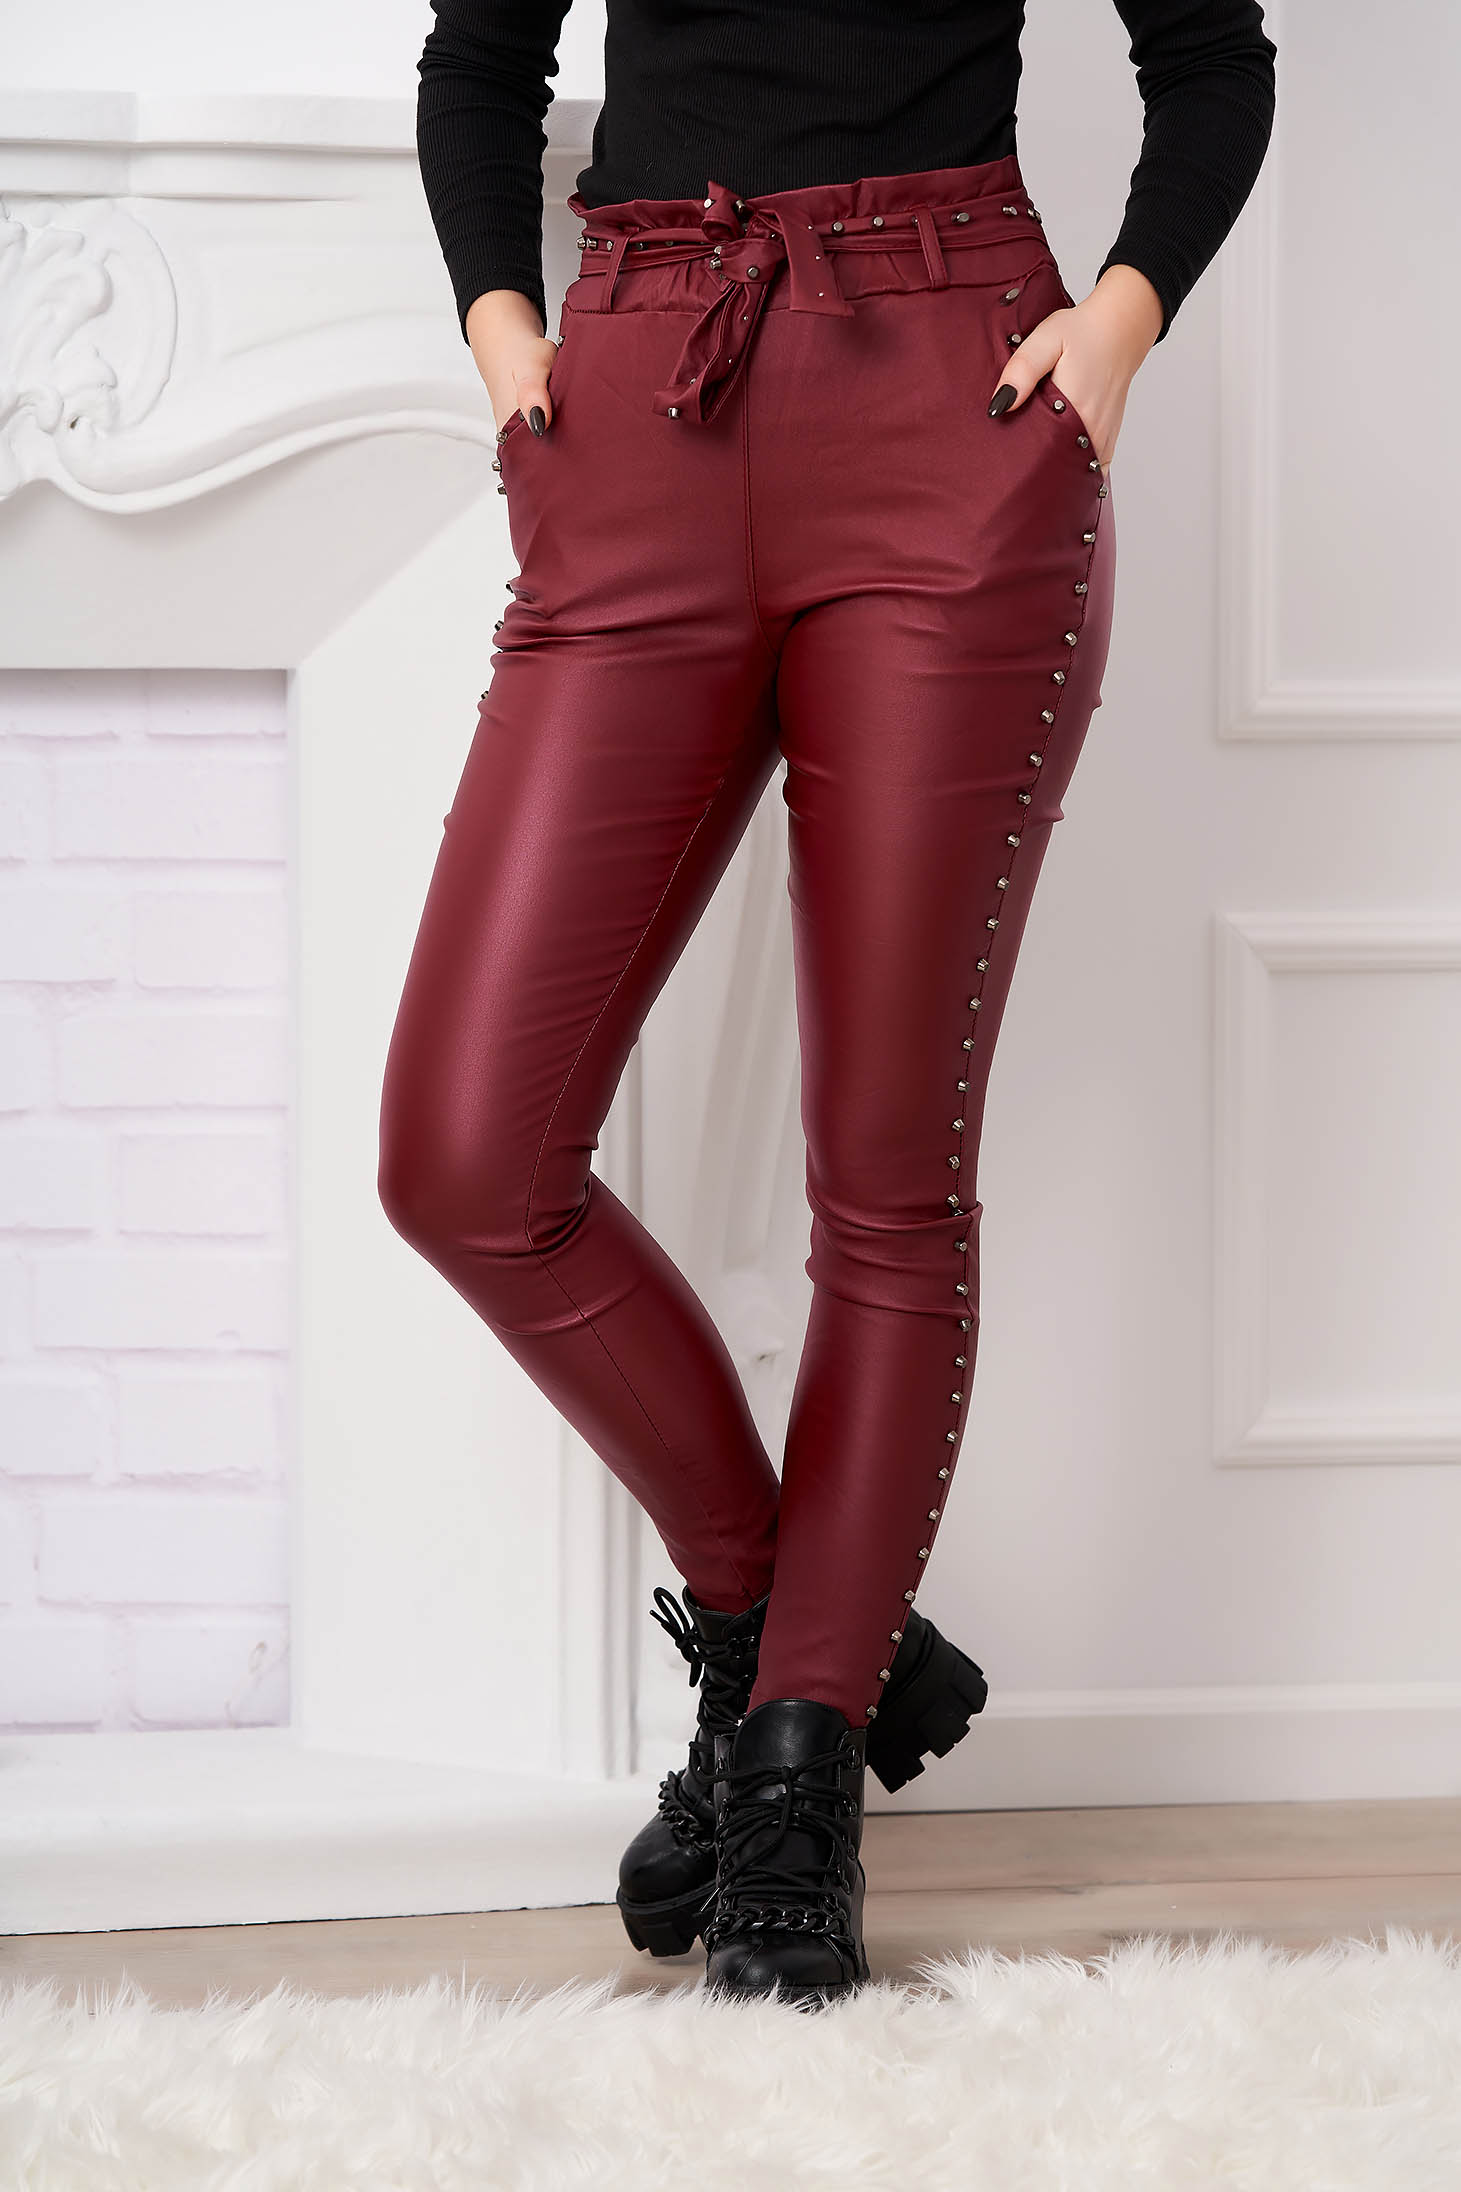 Burgundy trousers with metallic spikes from ecological leather high waisted with tented cut